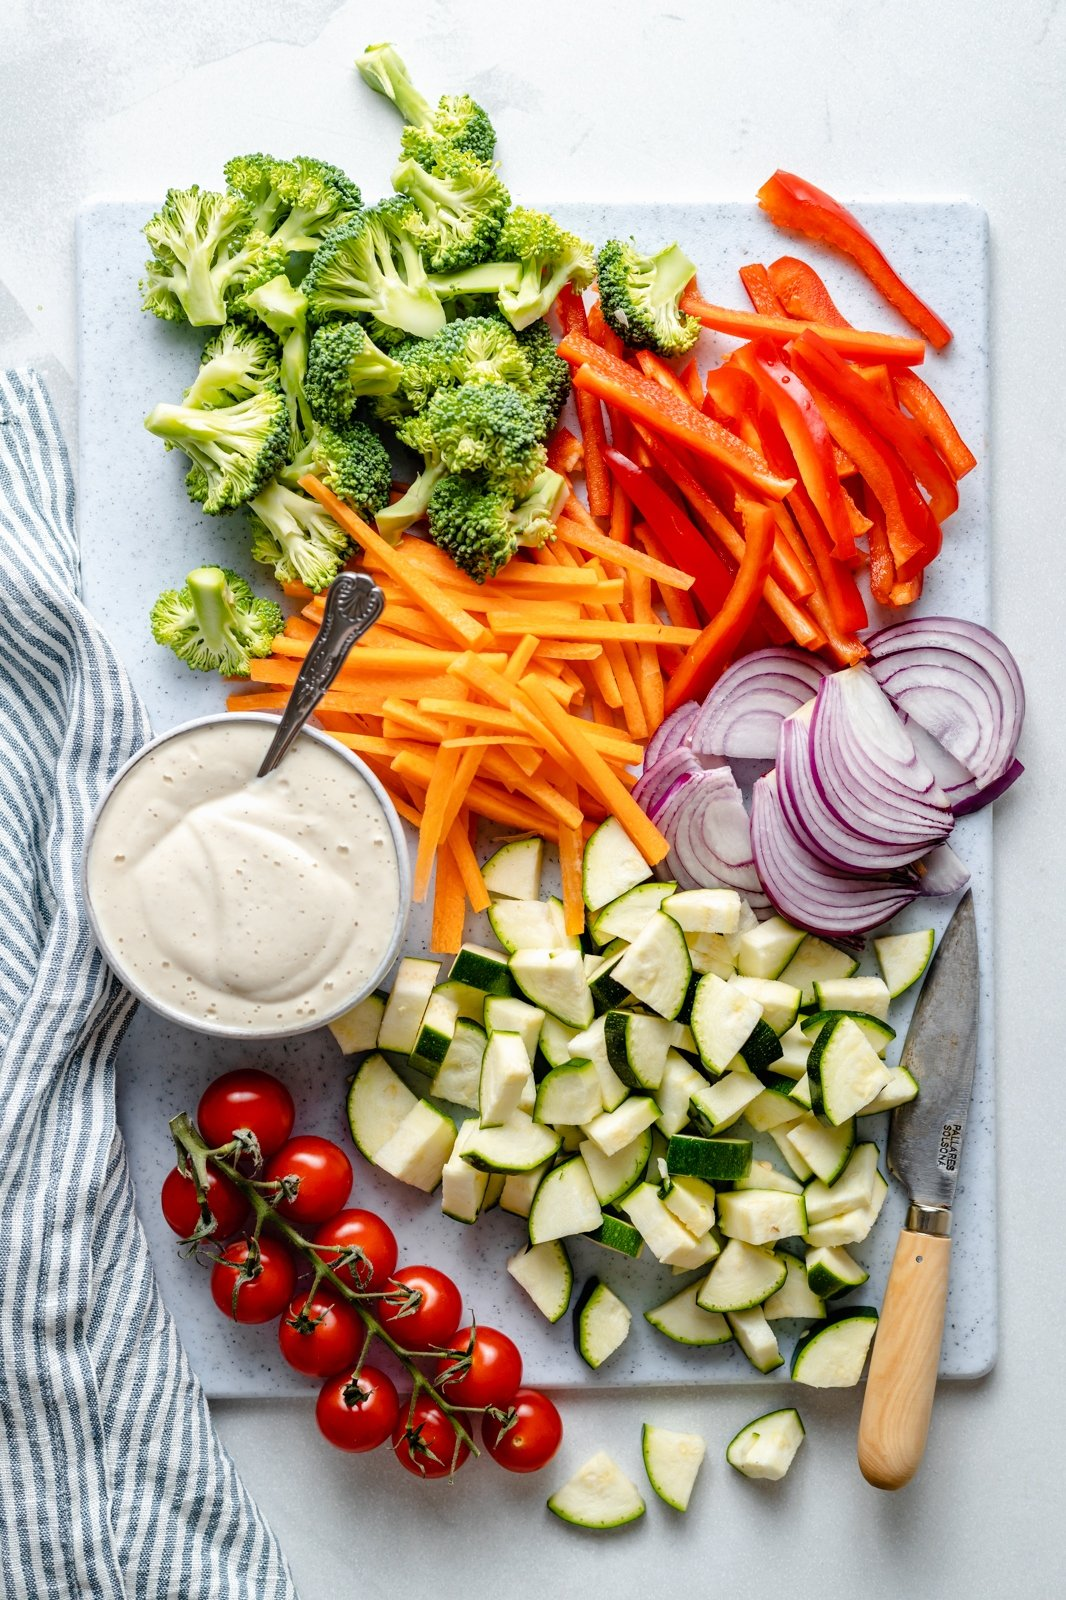 vegetables and sauce laid out on a board to make vegan pasta primavera